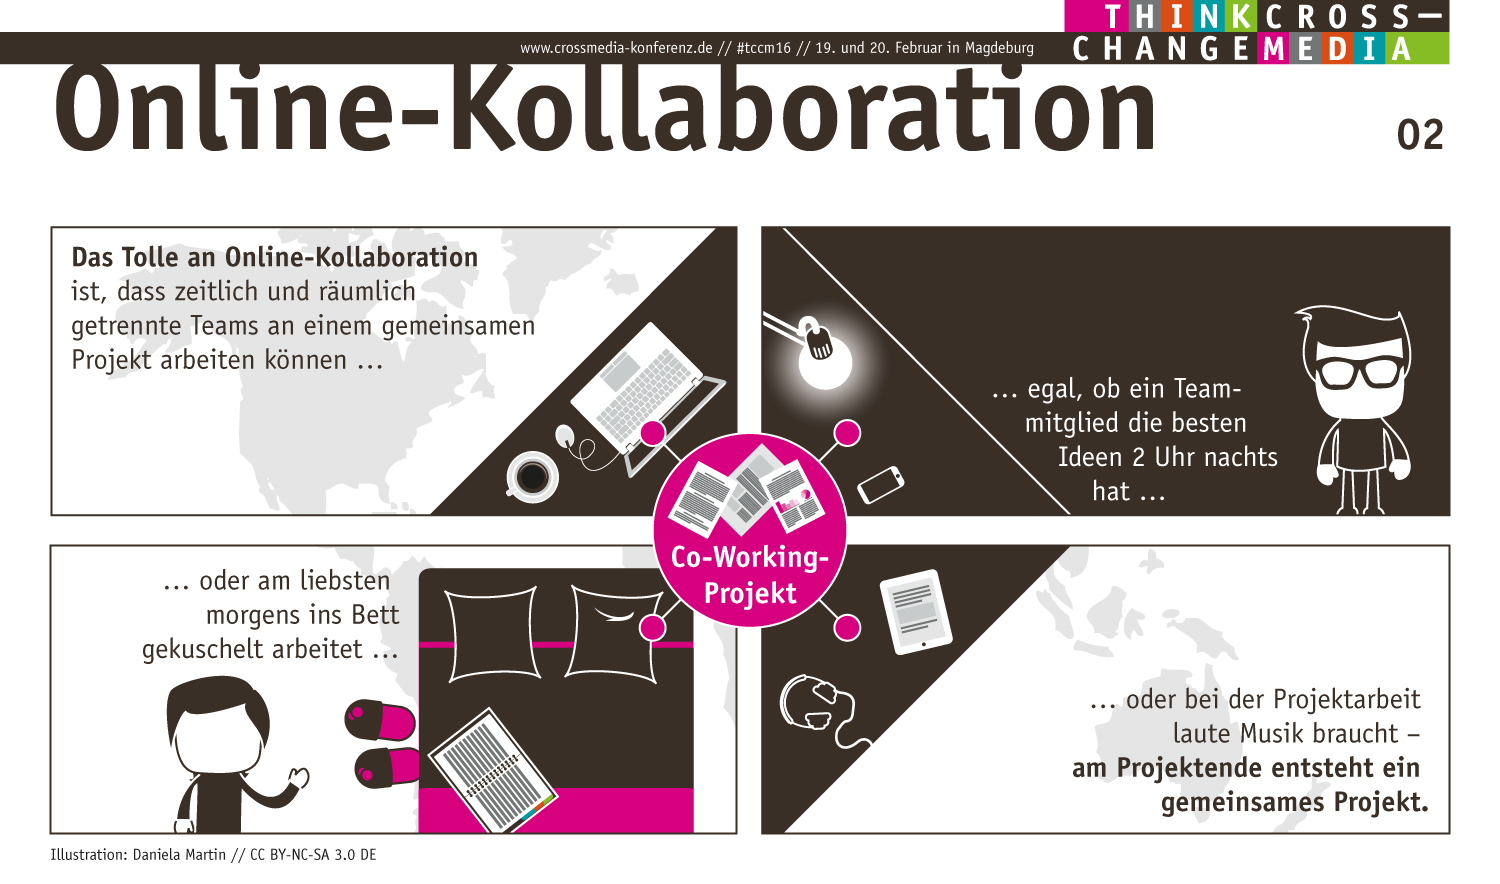 Online-Kollaboration – Crossmedia im Comic